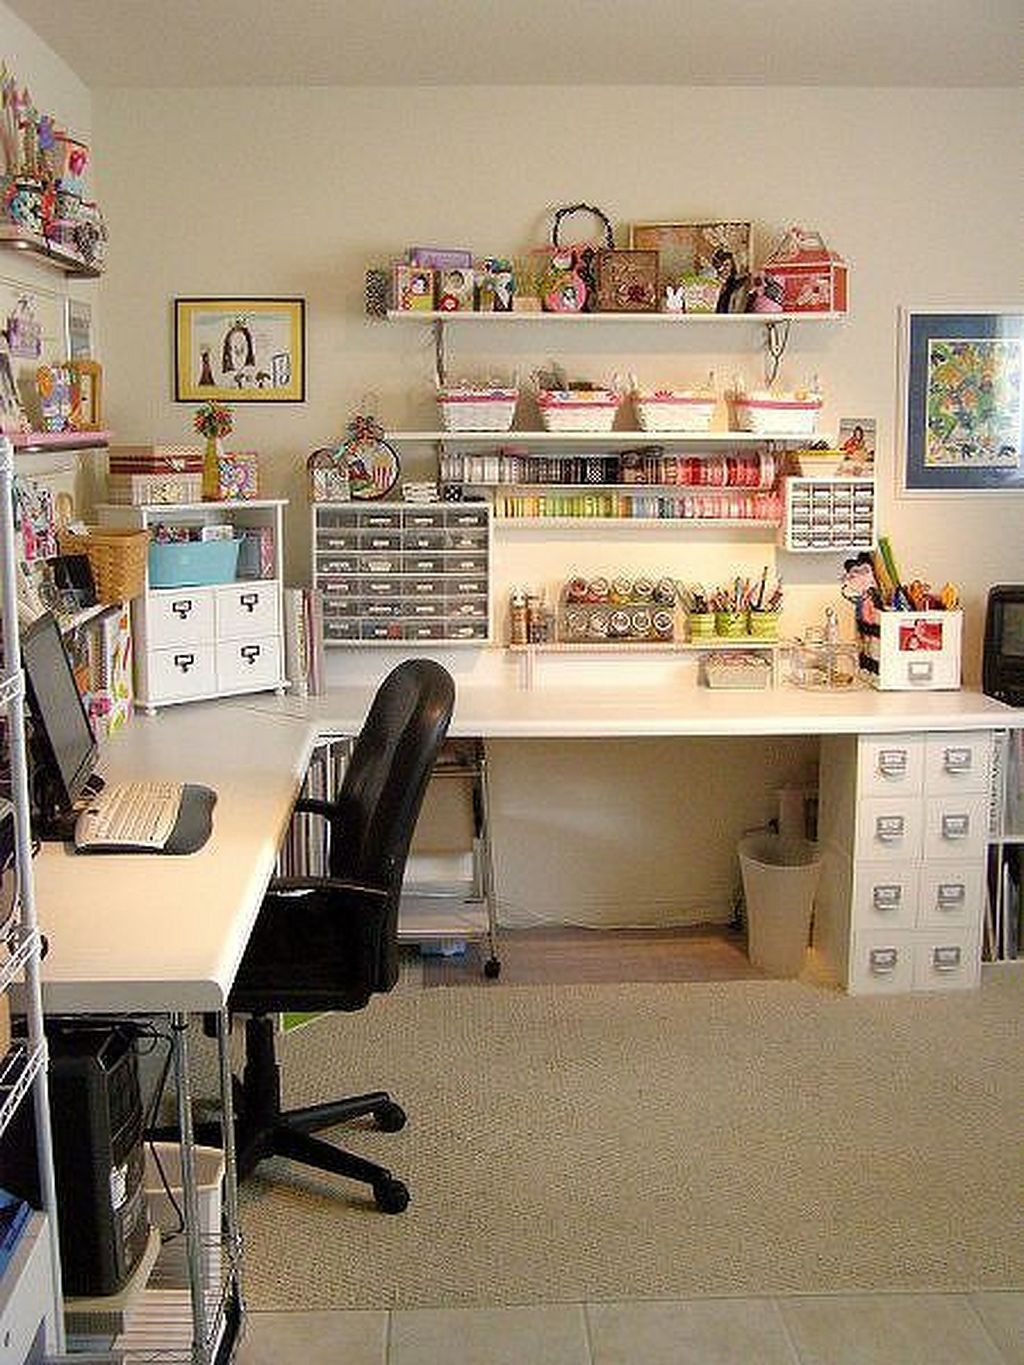 10x10 Room Layout Craft: Creating Craft Room And Ideas 24